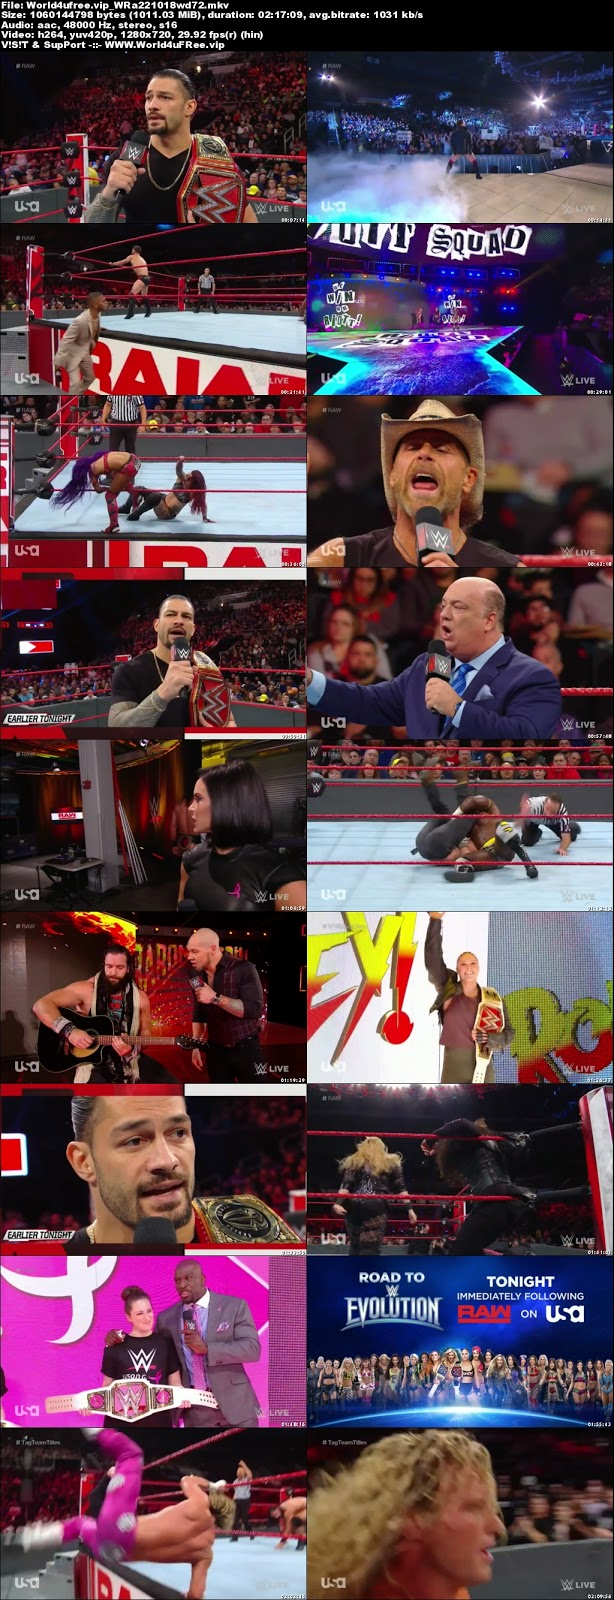 WWE Monday Night RAW 22 OCTOBER 2018 720p HDTV 1Gb x264 world4ufree.vip tv show wwe monday night raw wwe show monday night raw compressed small size free download or watch onlne at world4ufree.vip